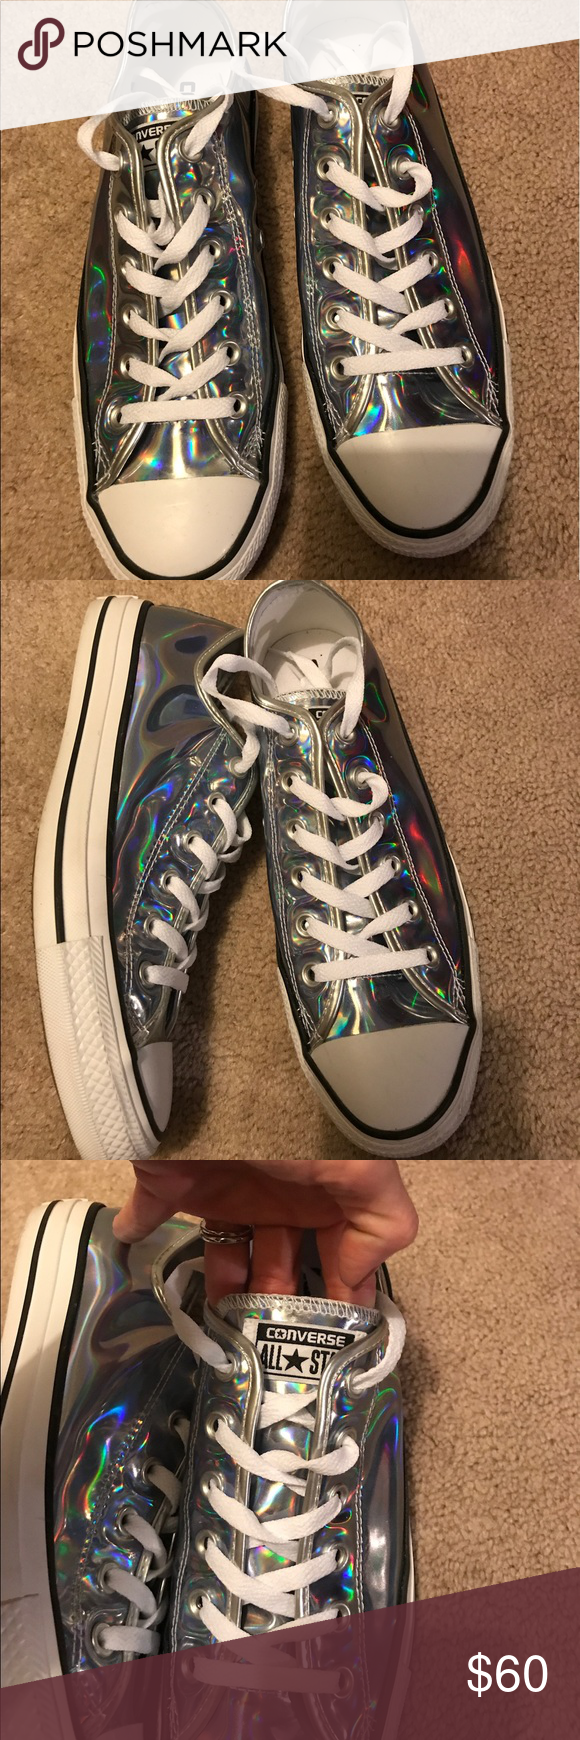 03980b5031a4 Converse holographic chucks size 9 Worn one time. They are gorgeous! Converse  Shoes Athletic Shoes